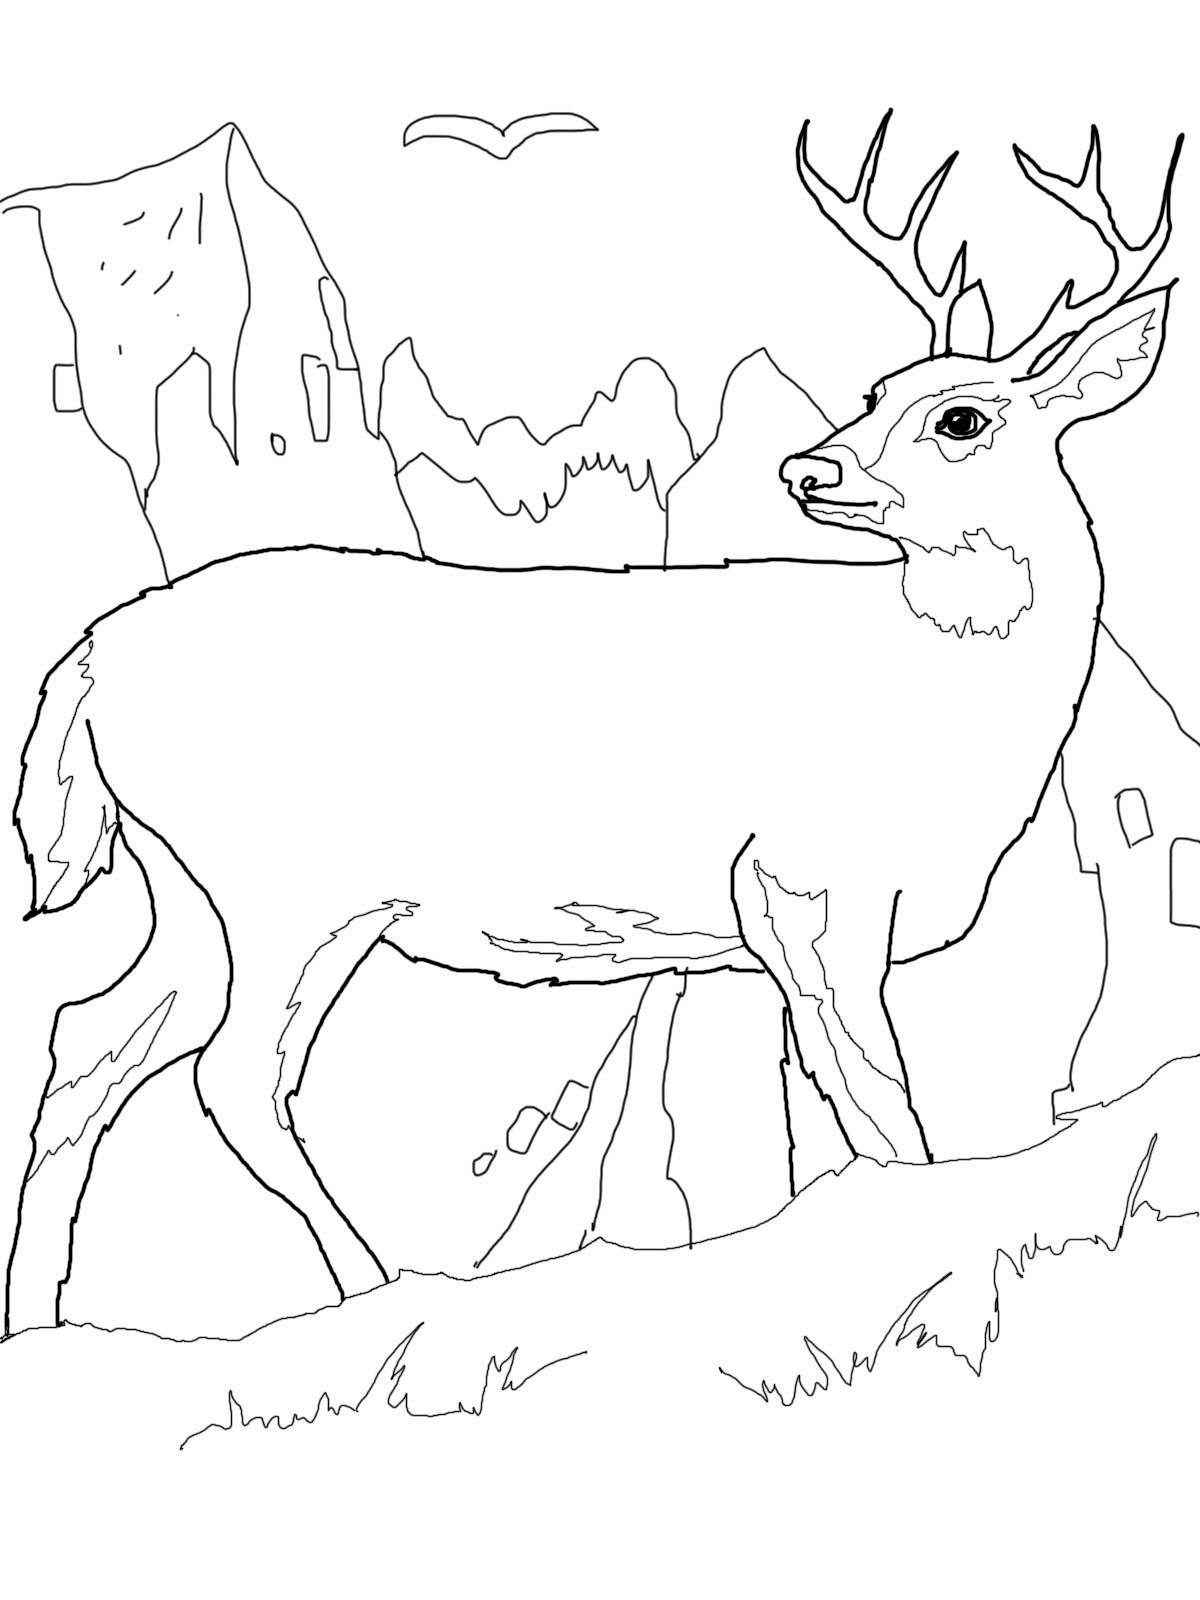 The gruffalo colouring pages to print - Deer Coloring Pages Pictures